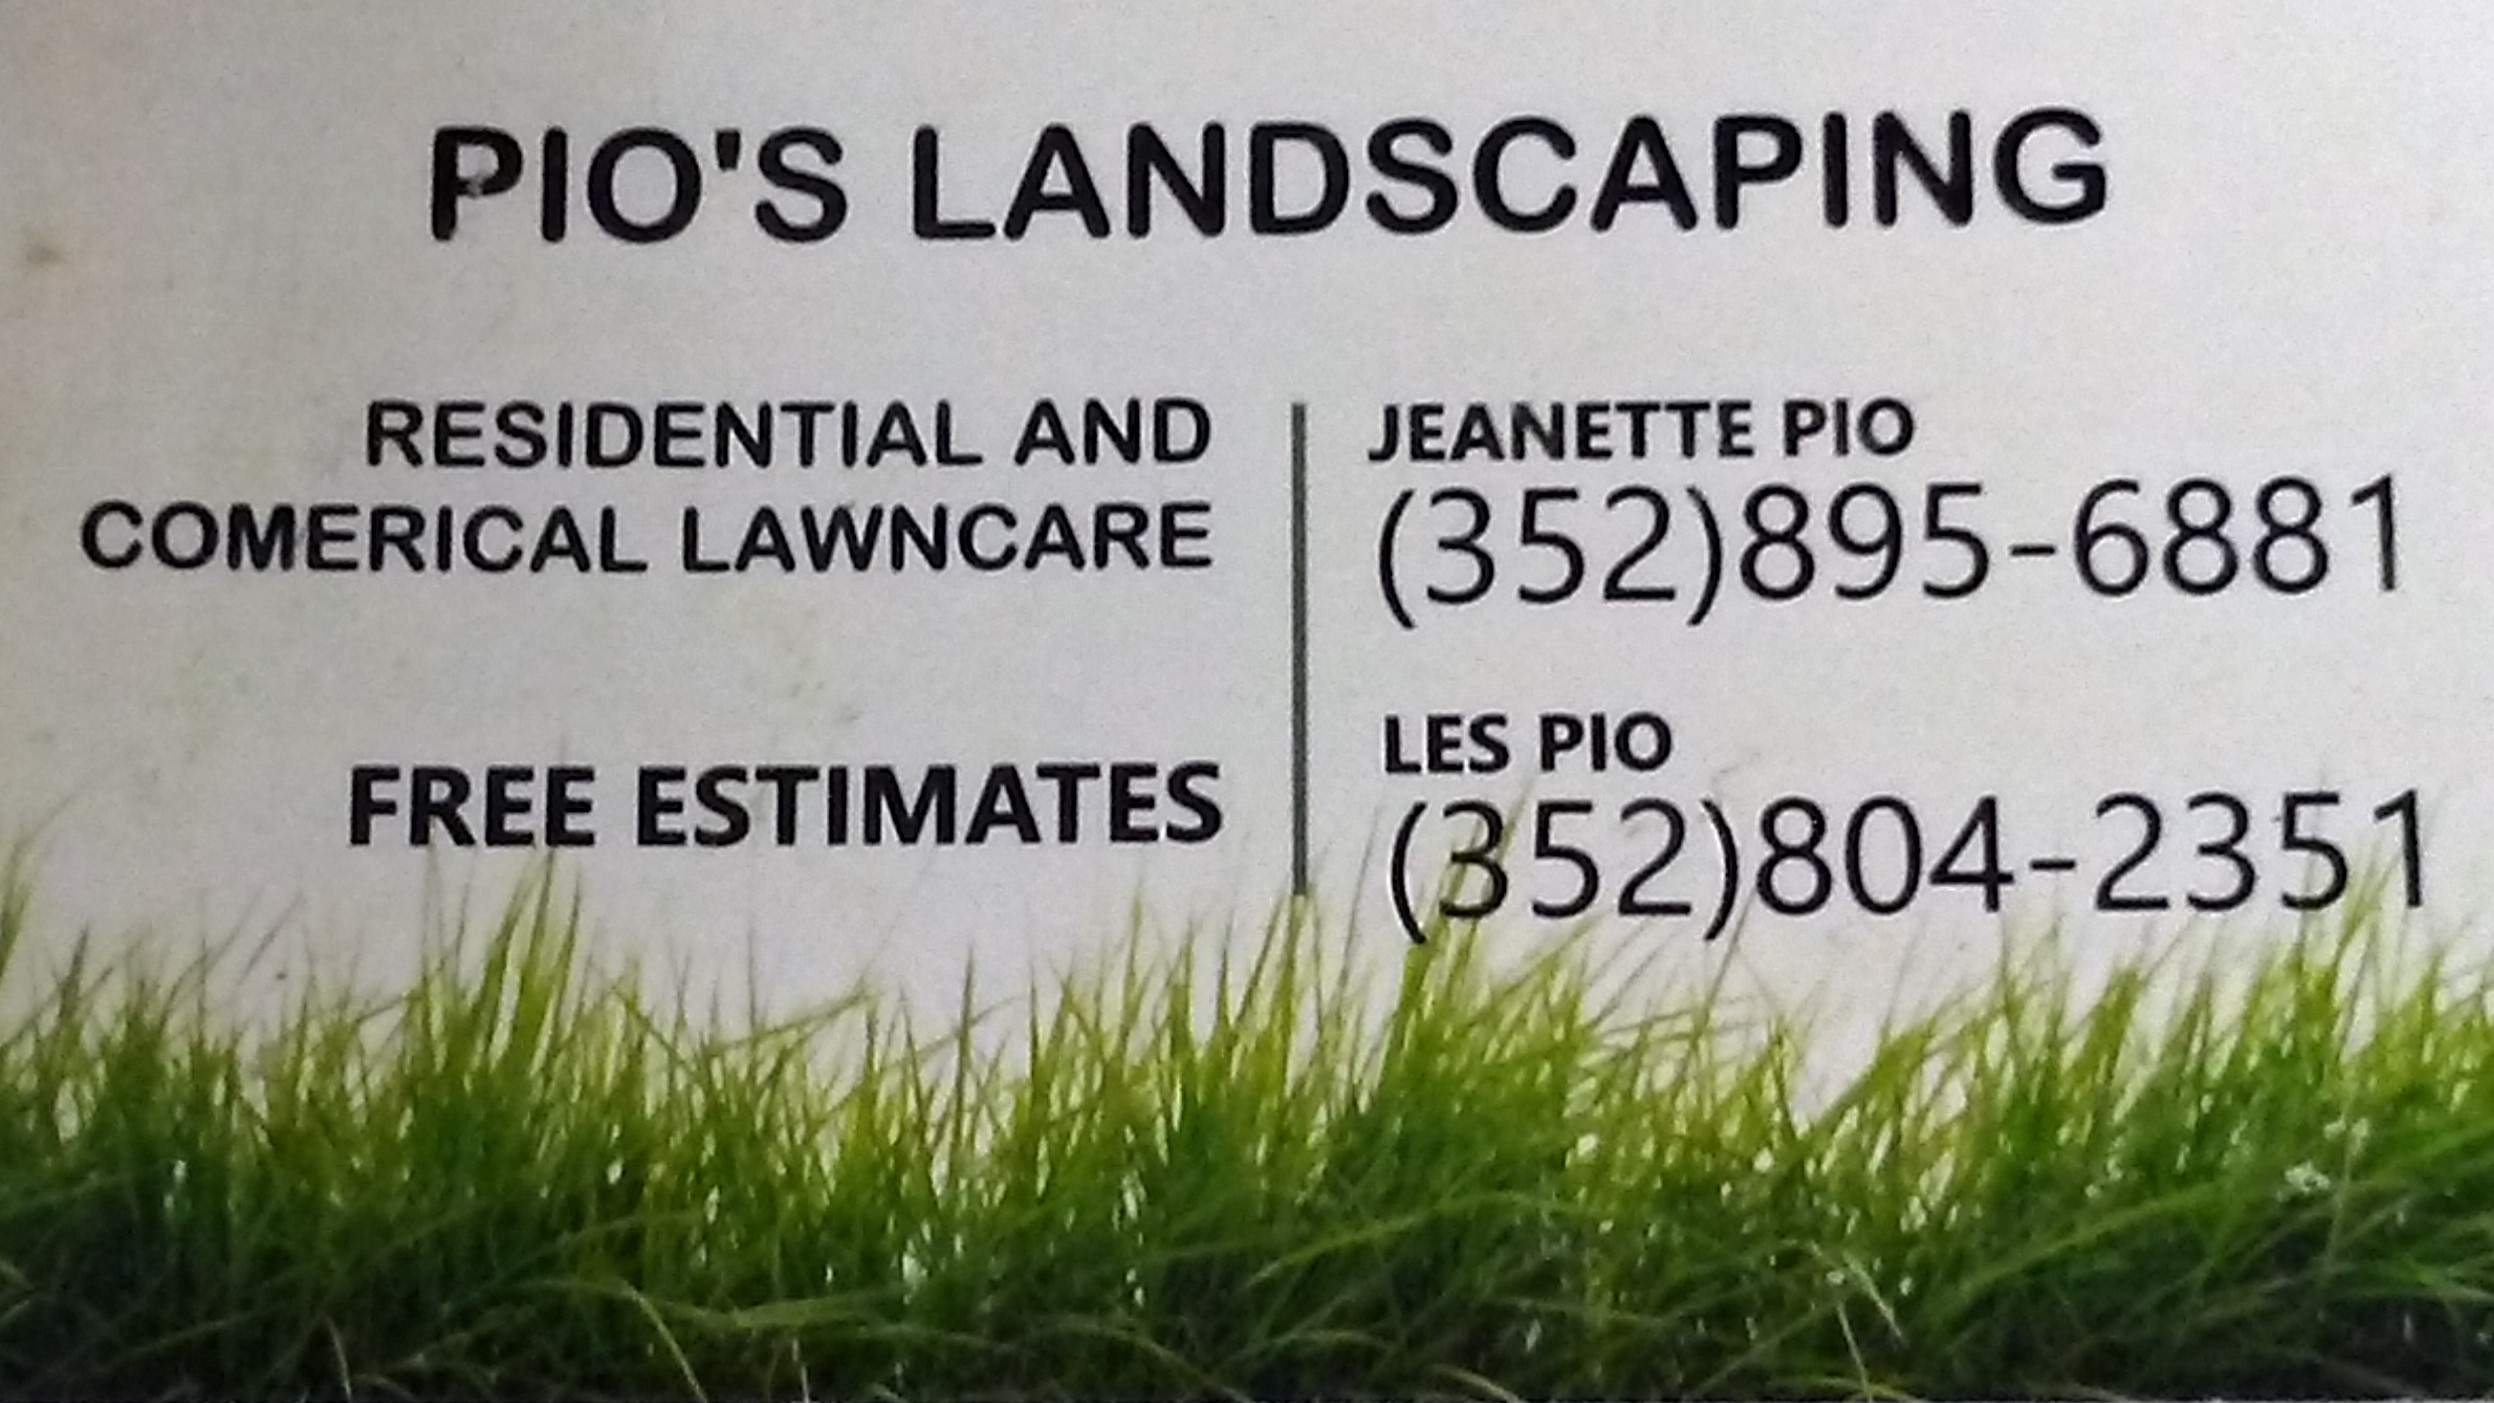 PIO LAWN CARE AND LANDSCAPING